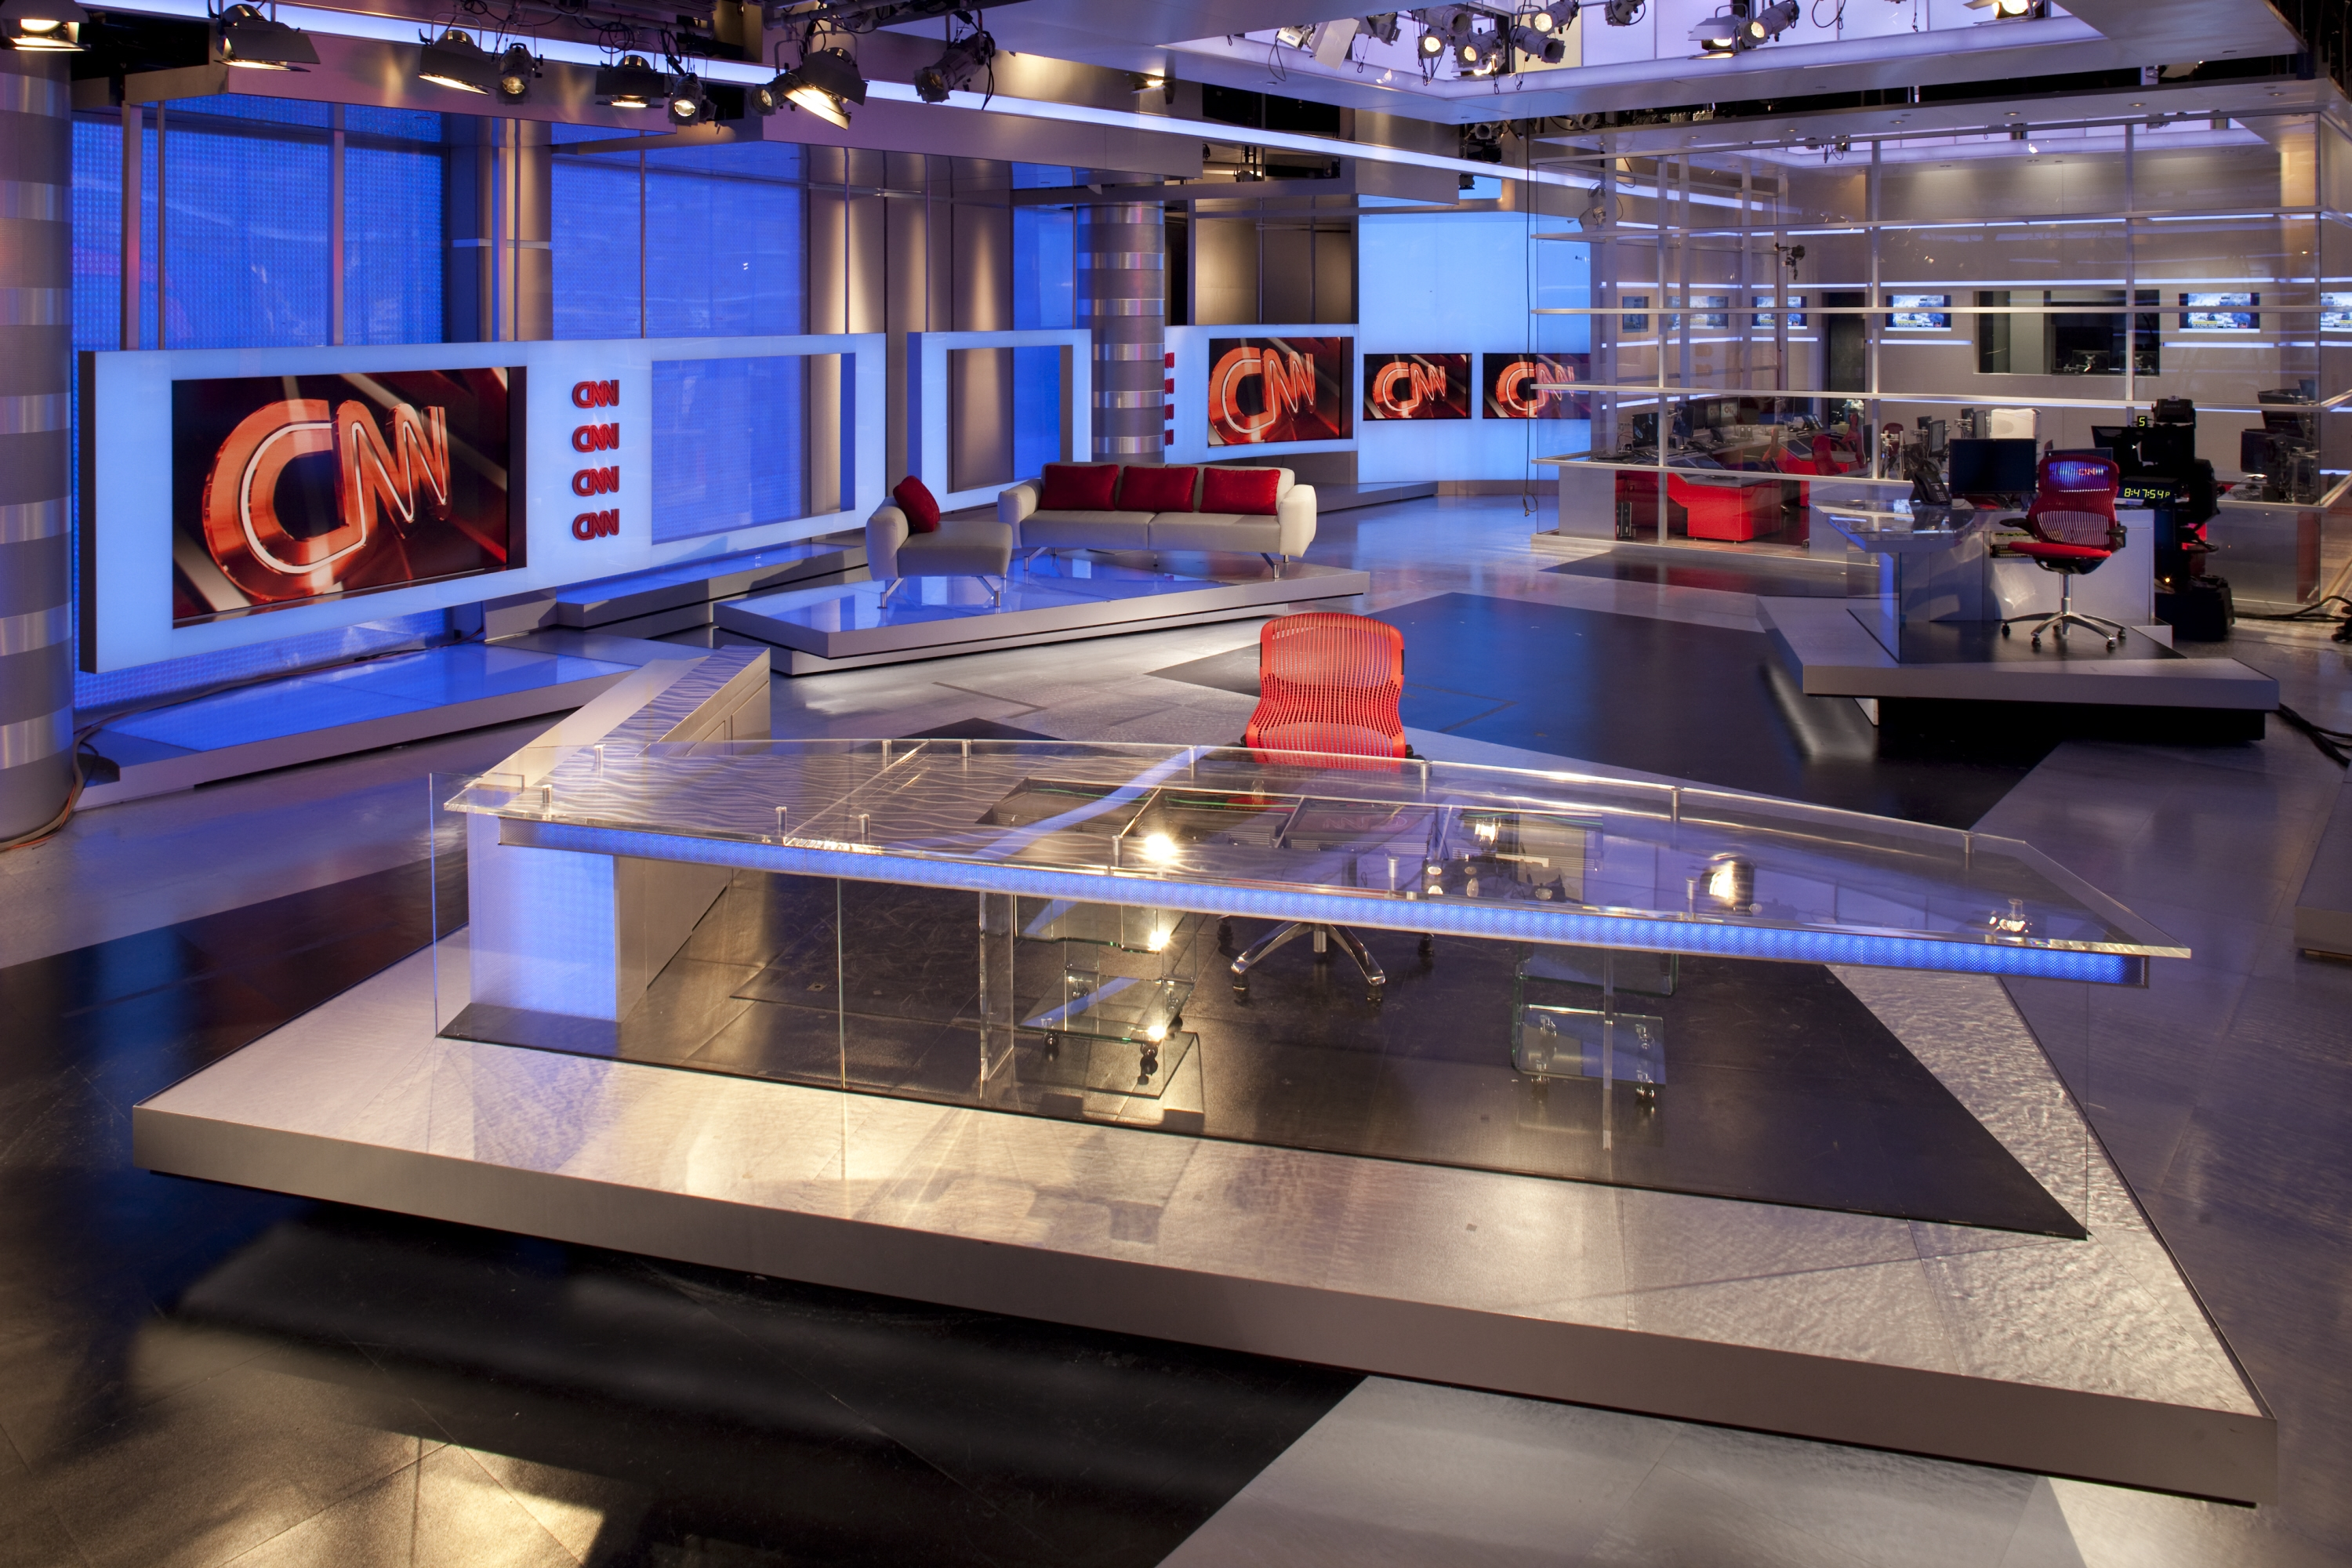 CNN Atlanta's Brand New Studio